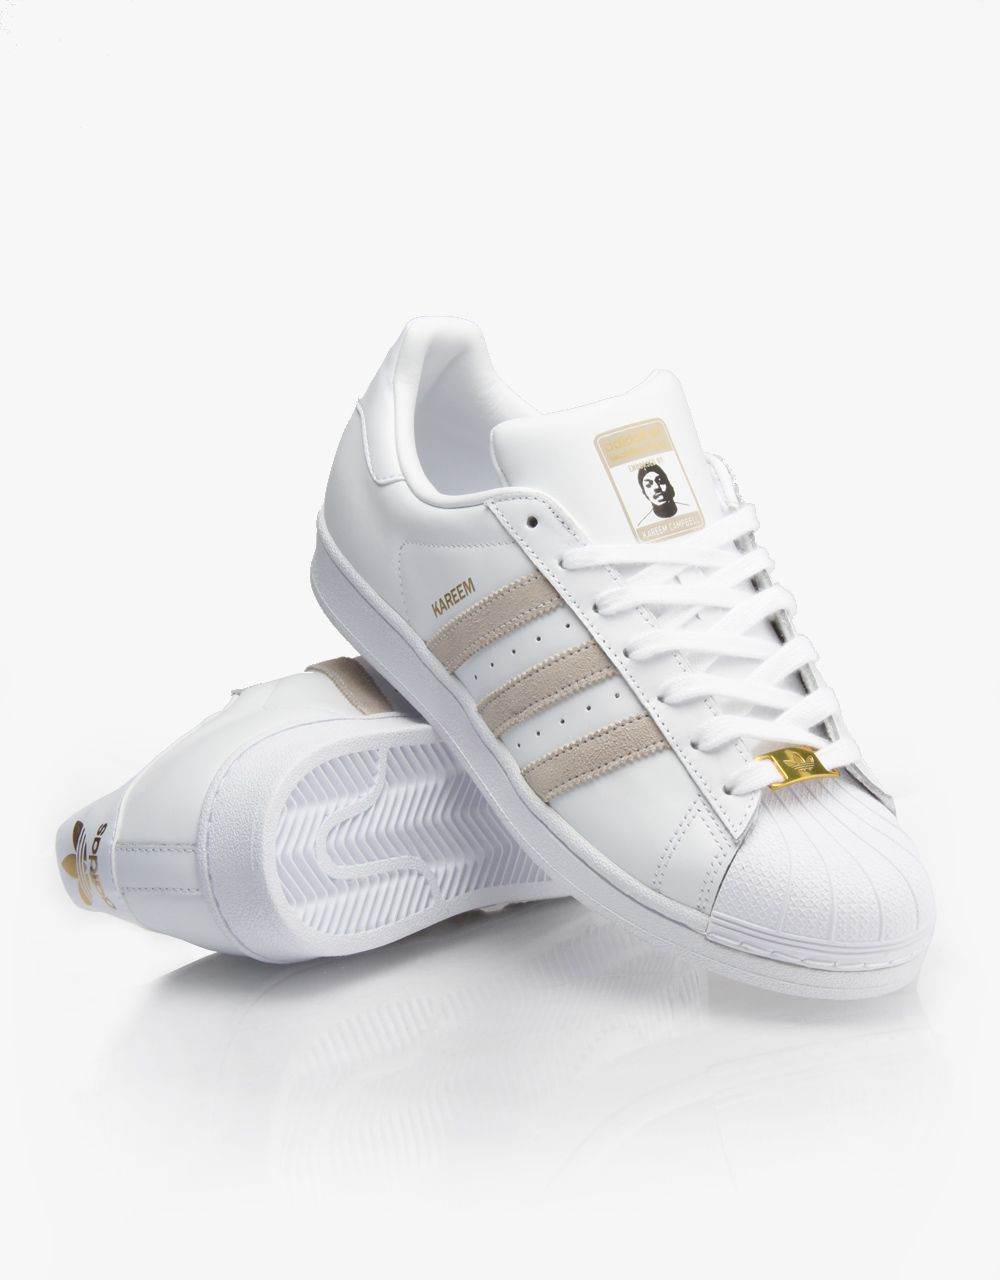 Adidas RYR Kareem Campbell Superstar Skate Shoes  WhiteWhiteWhite   RouteOne